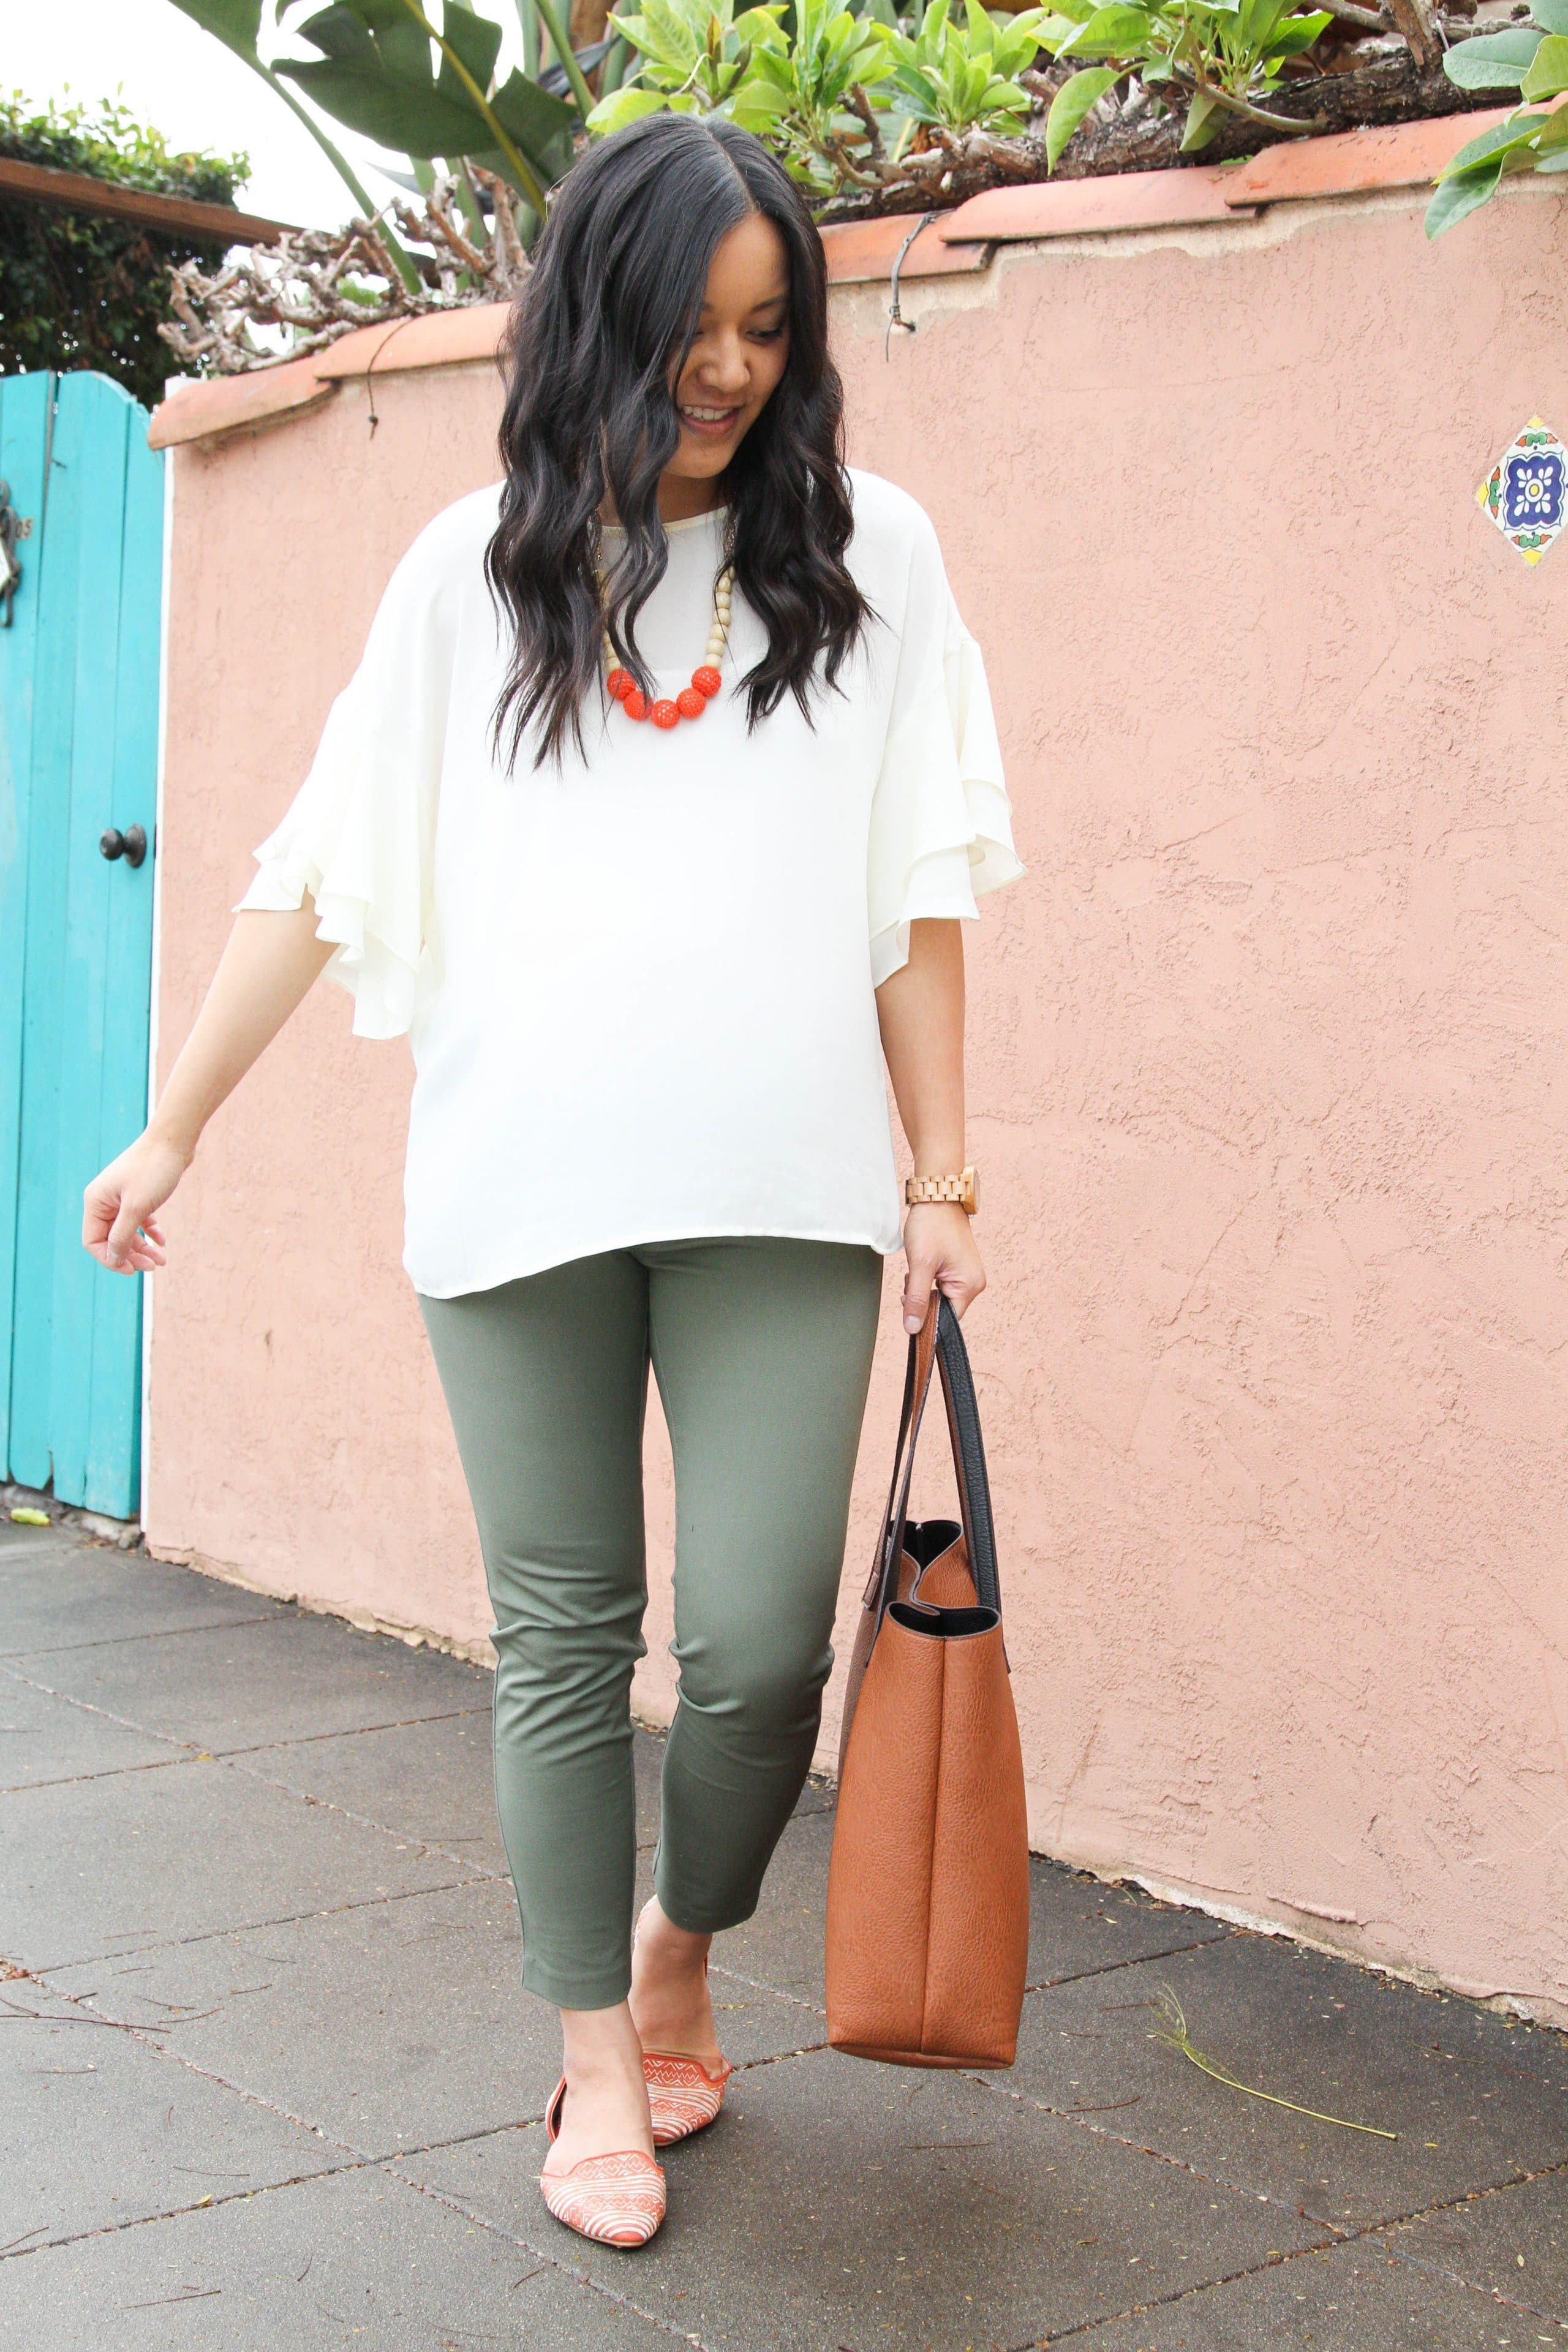 White Bell Sleeve Blouse + Green Chinos + Cognac Tote + Statement Flats